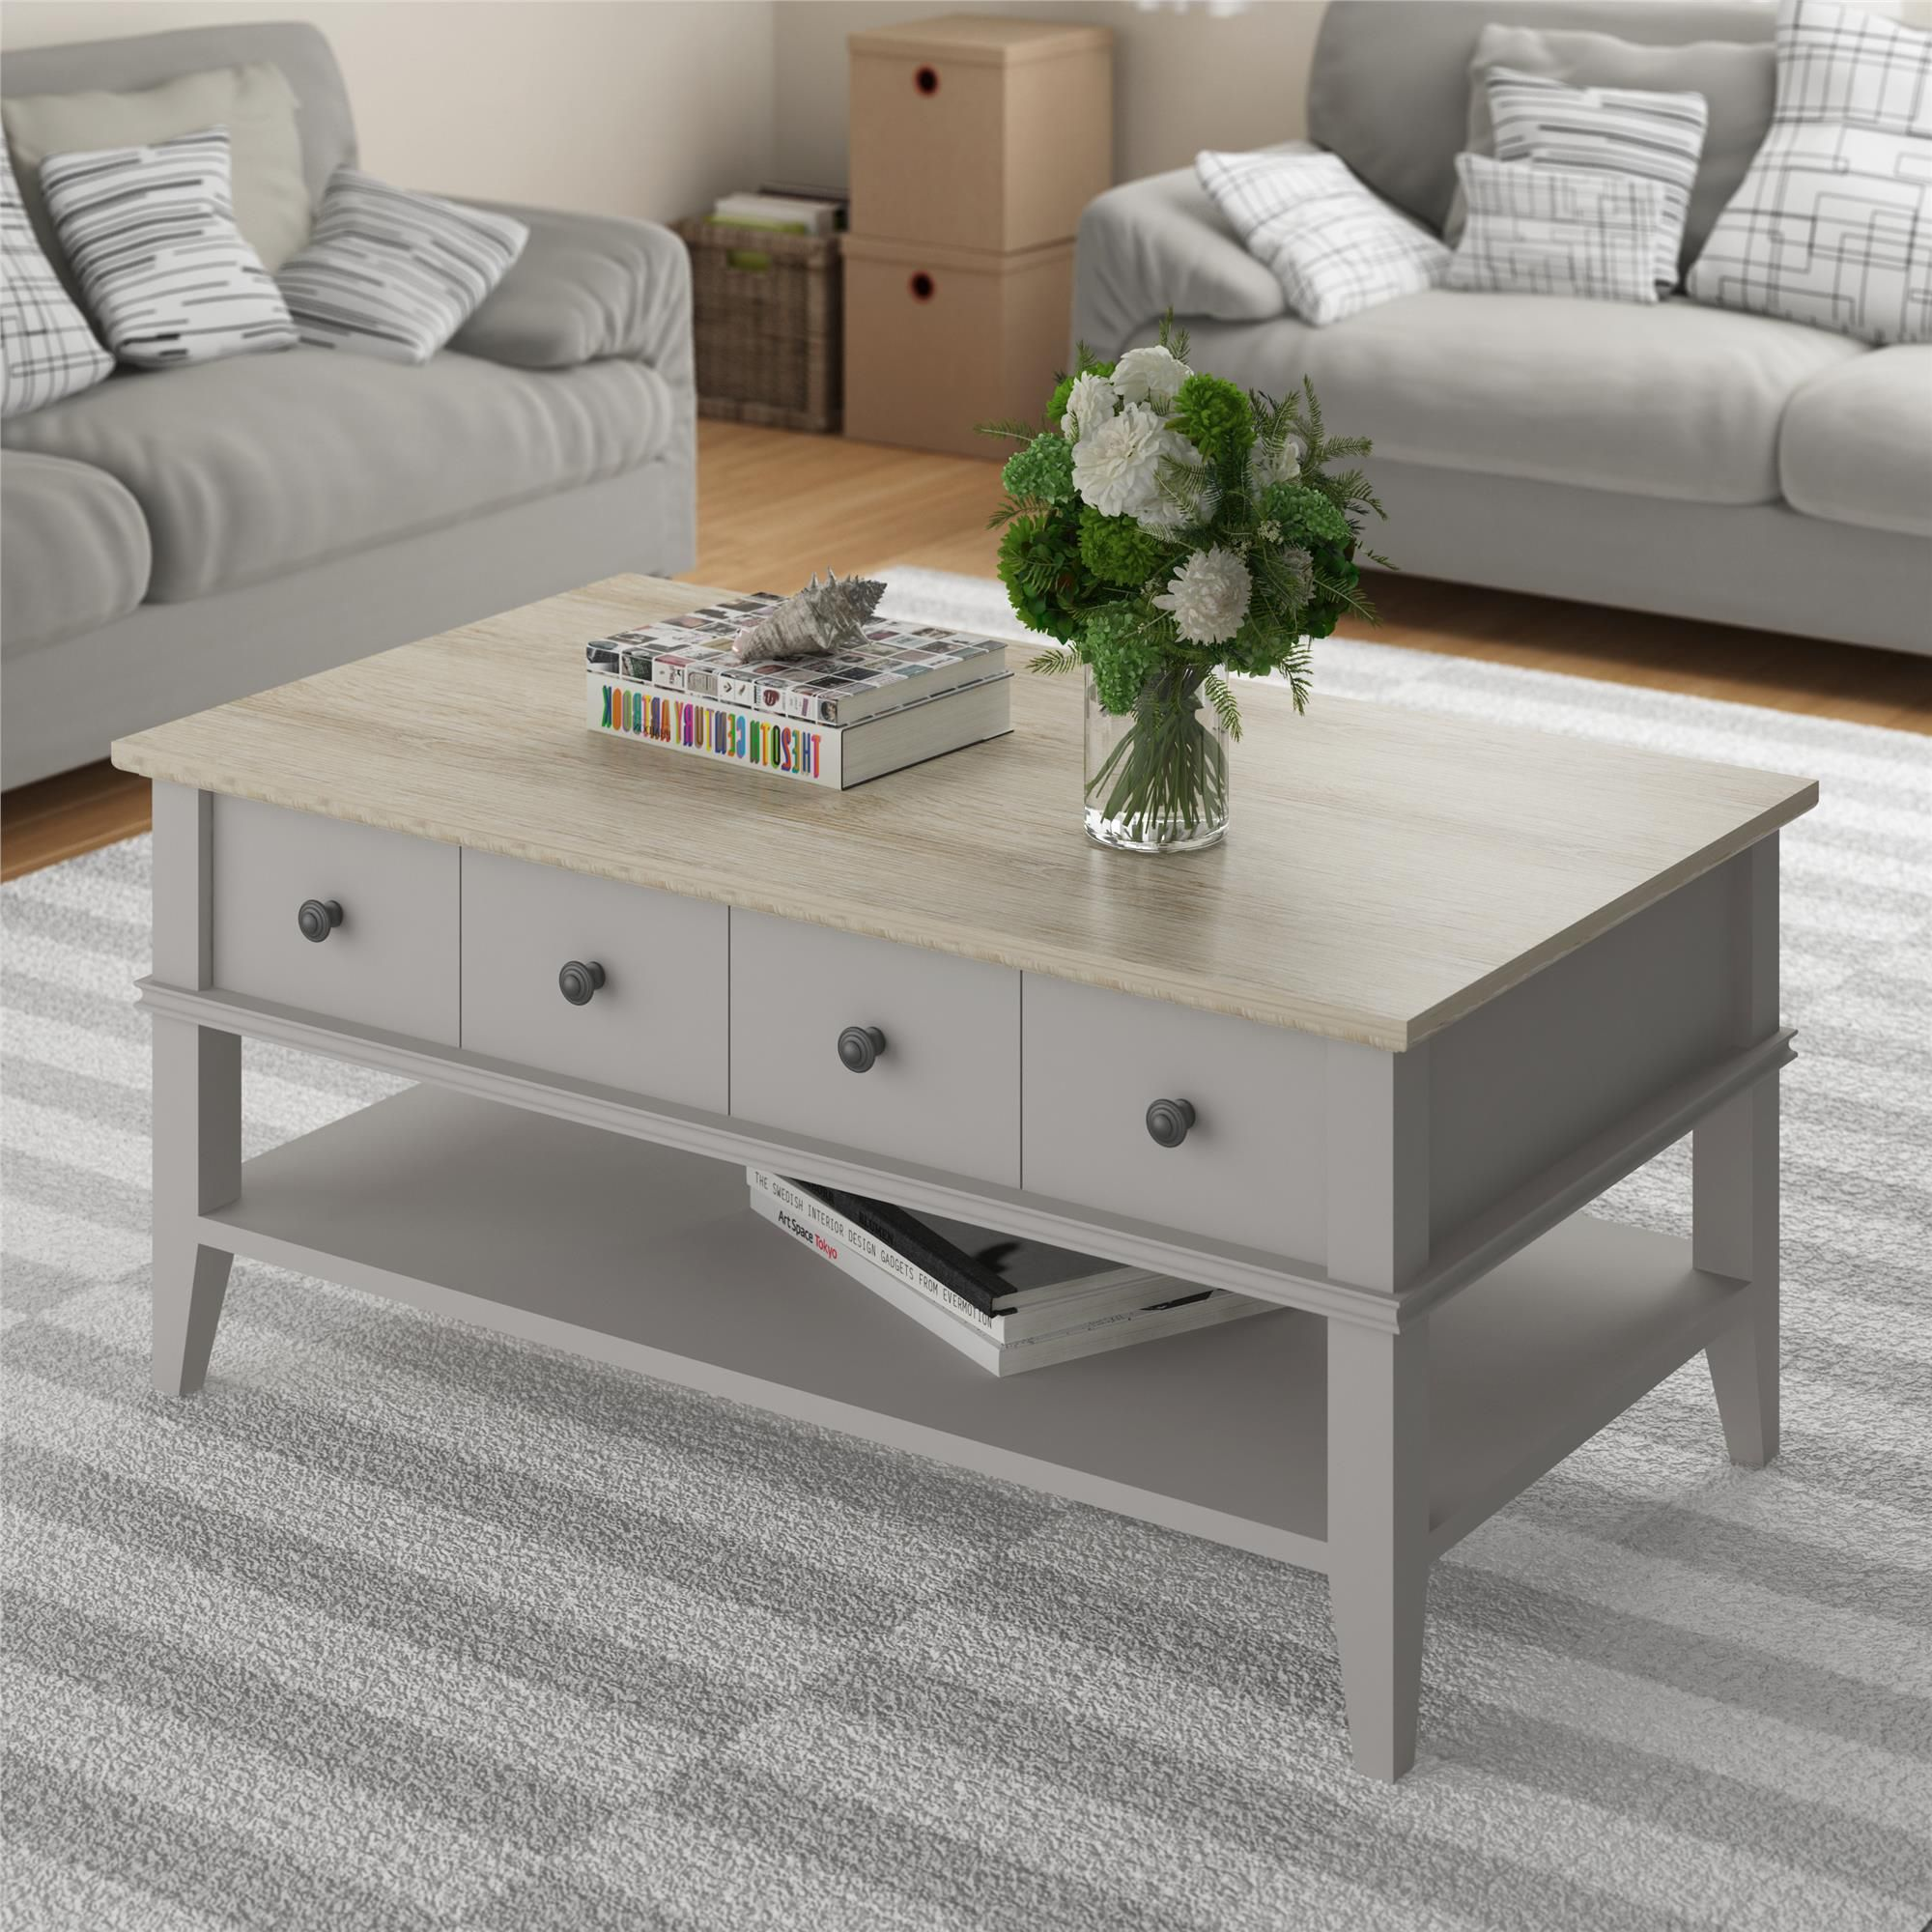 Pin By Cherie Stringer On Furniture Coffee Table Coffee Table With Storage Sofa End Tables [ 2000 x 2000 Pixel ]